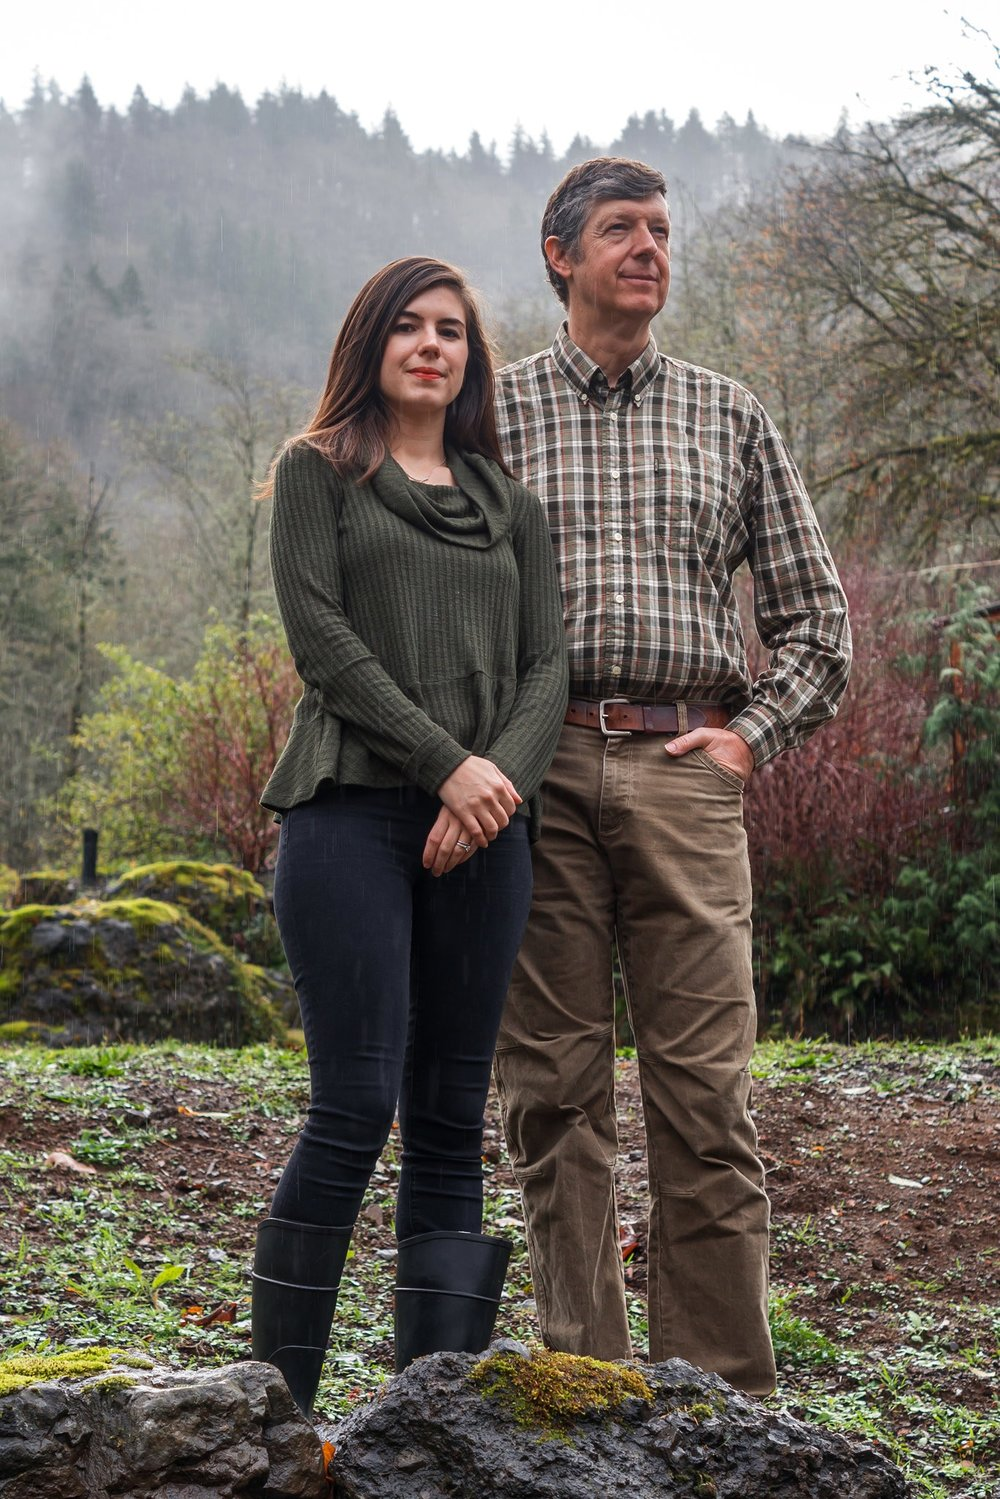 Dave Anderson, shown with his daughter, Casey Delperdang, bought a ranch in Oregon as a retreat for his extended family, in case their homes in Houston become uninhabitable.  Paul Wagtouicz